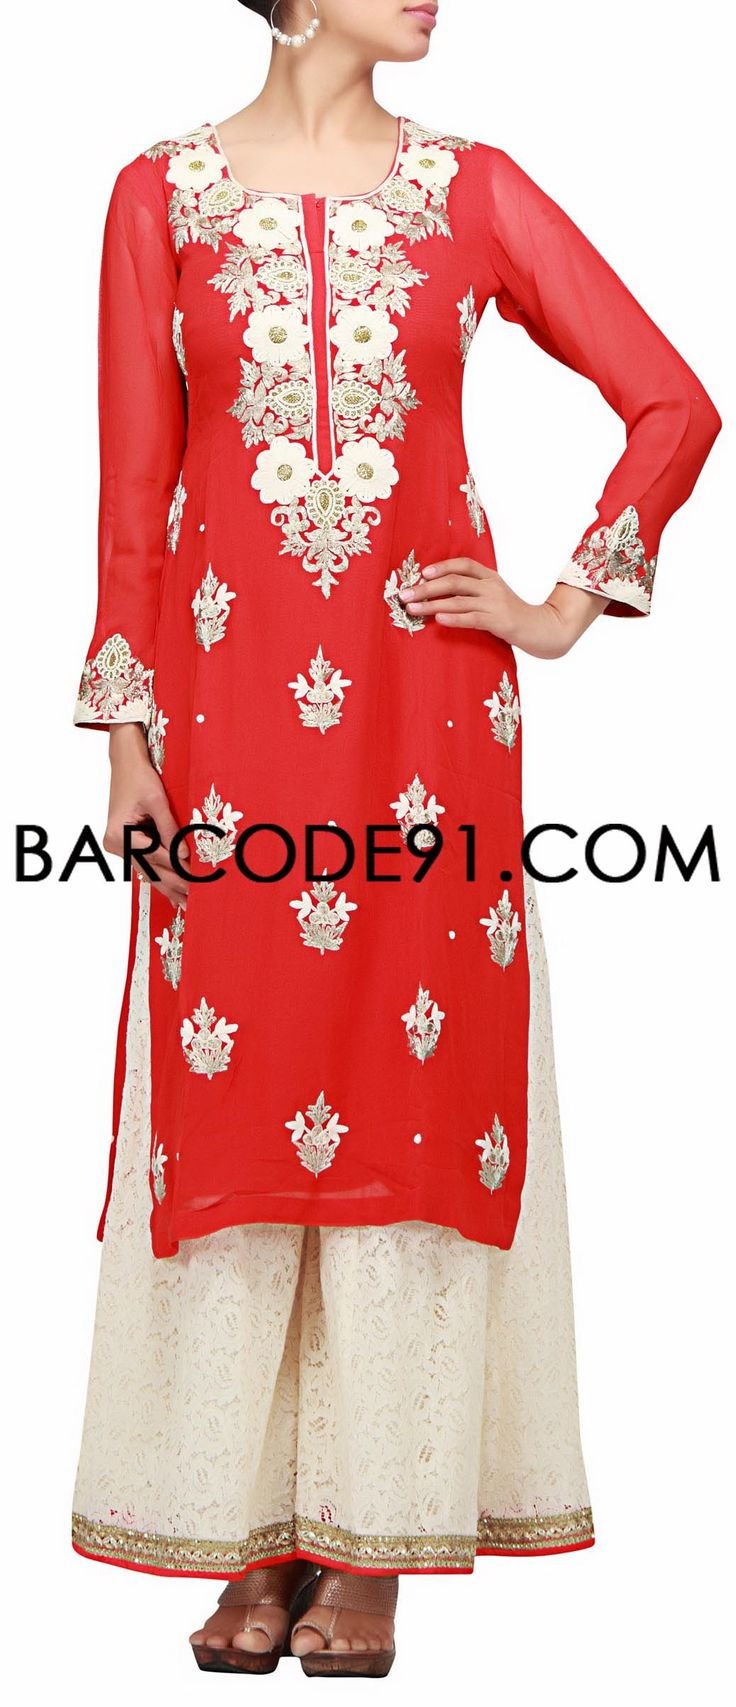 Buy it now http://www.barcode91.com/a-bright-red-suit-in-thread-embroidery-with-palazzo-by-b91-exclusive.html A bright red suit in thread embroidery with palazzo by B91 Exclusive